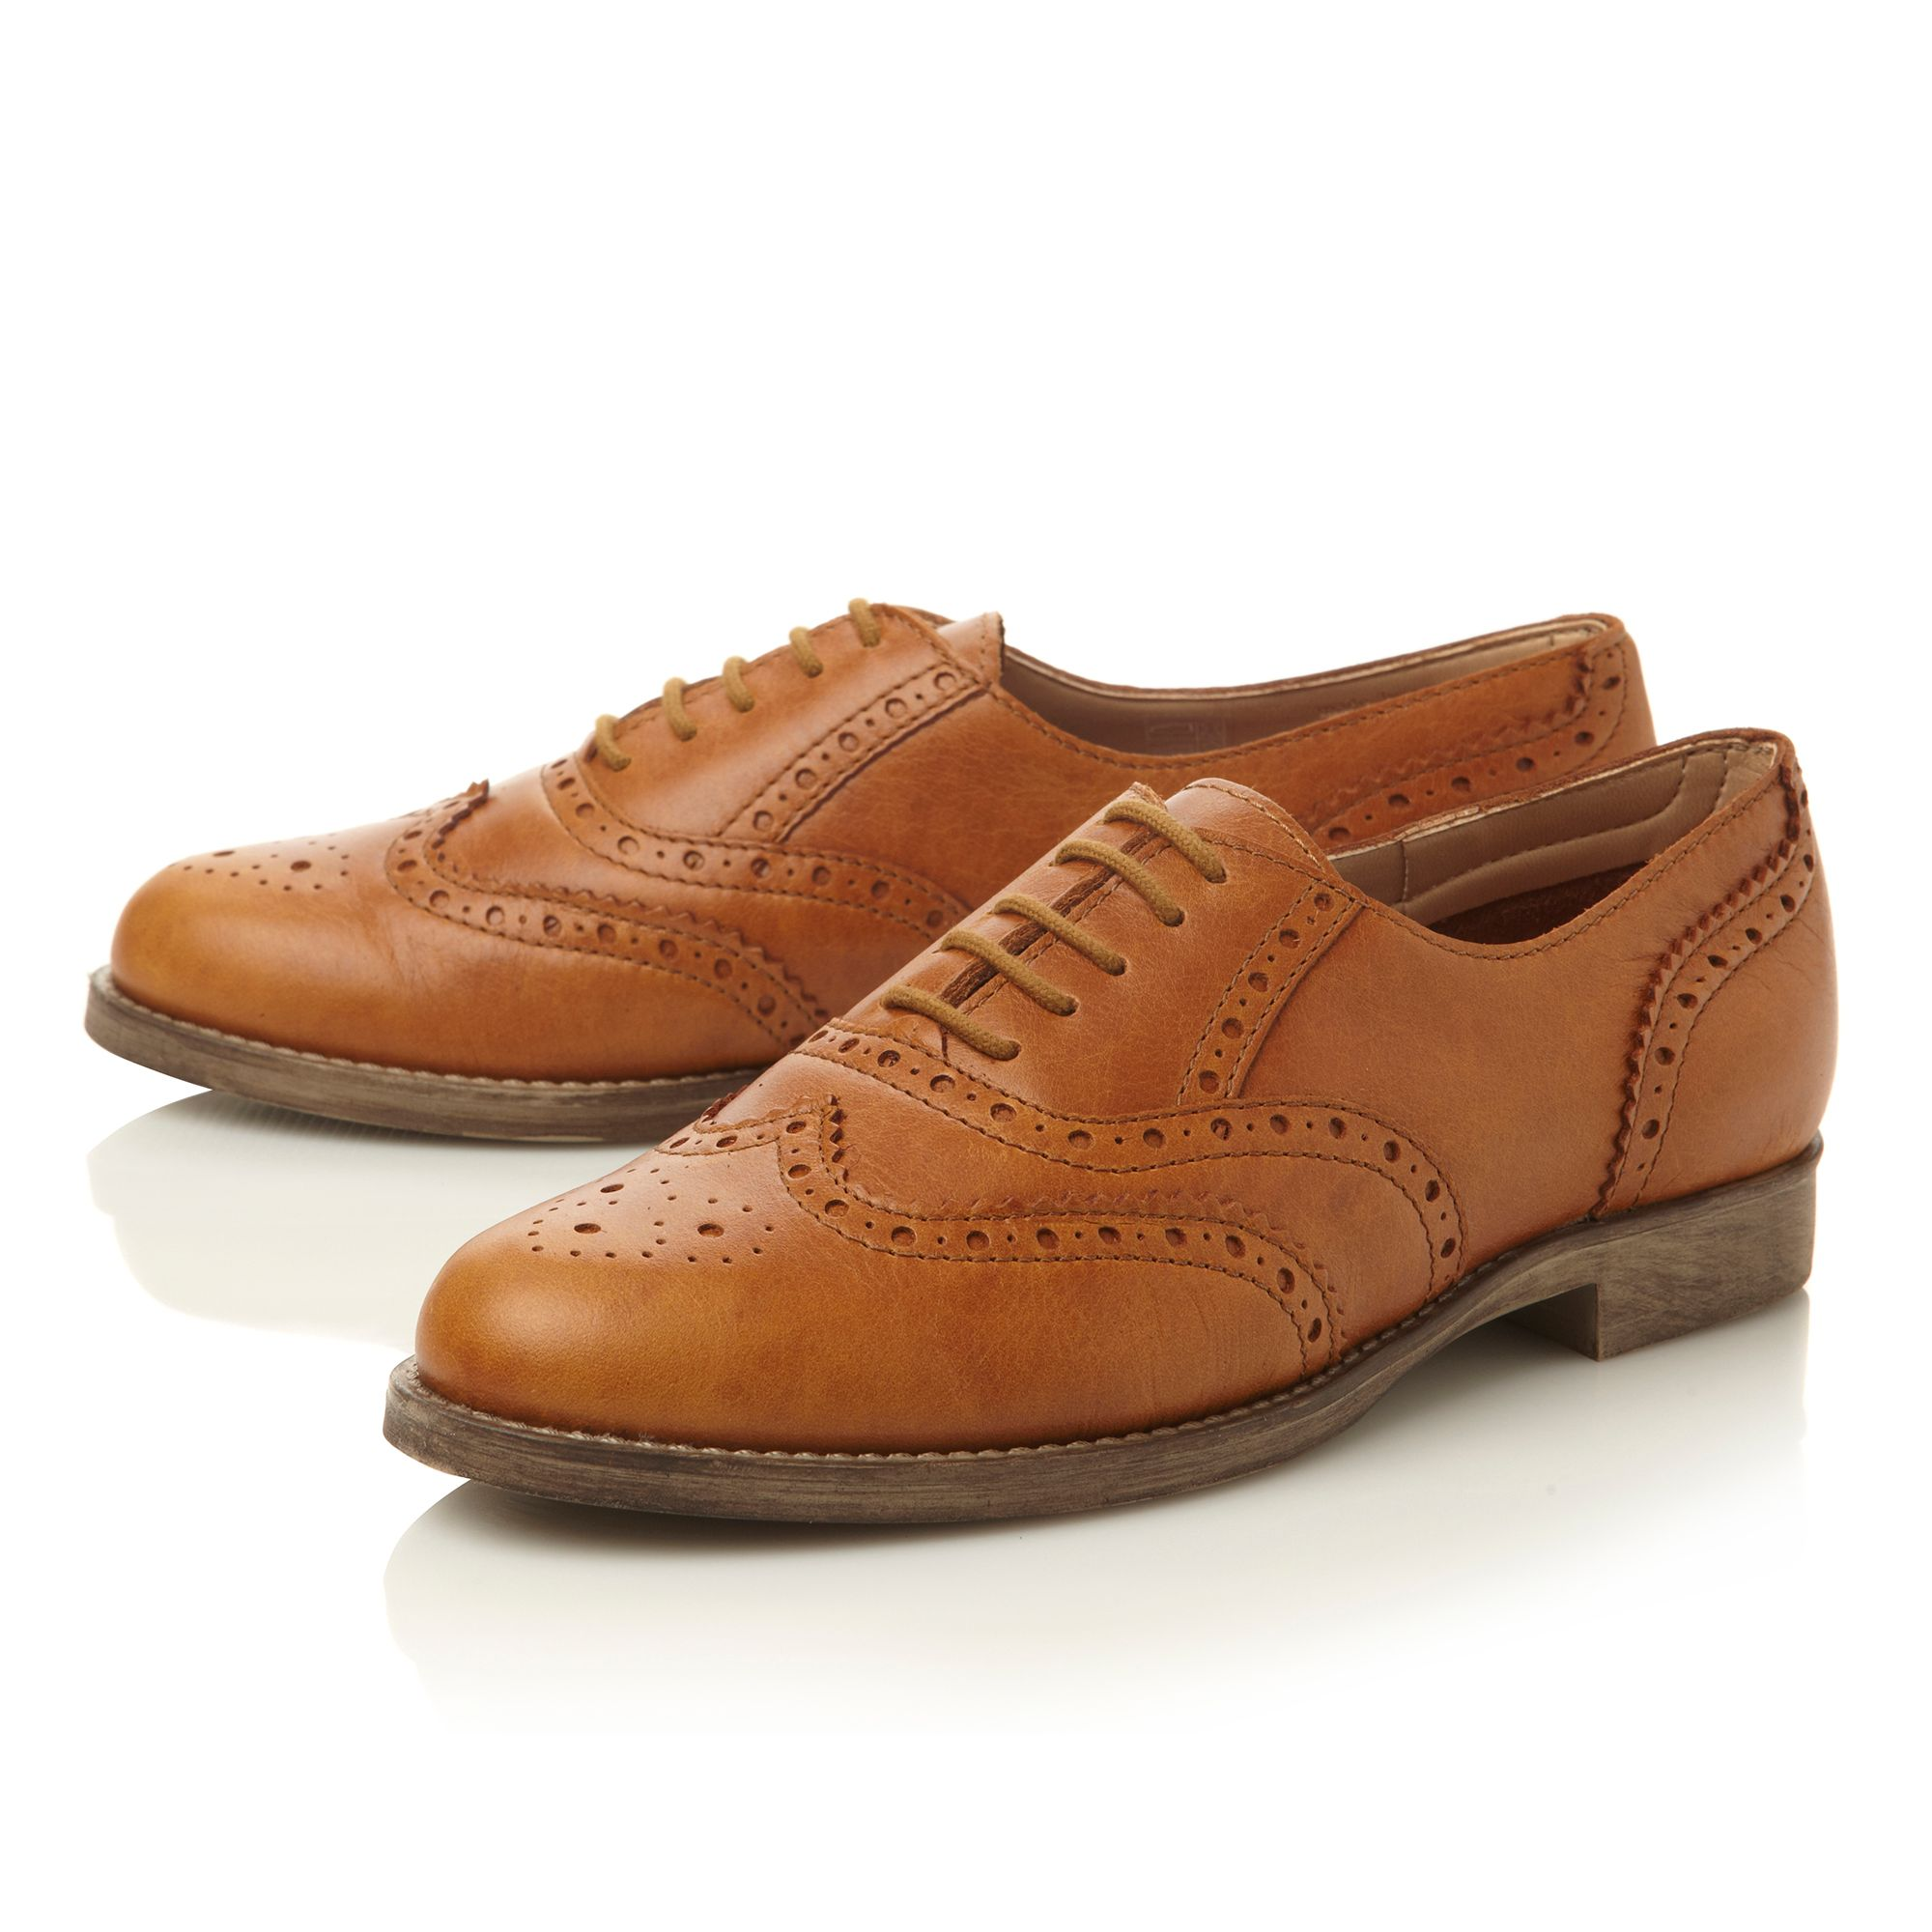 Lilirose lace up brogue shoes